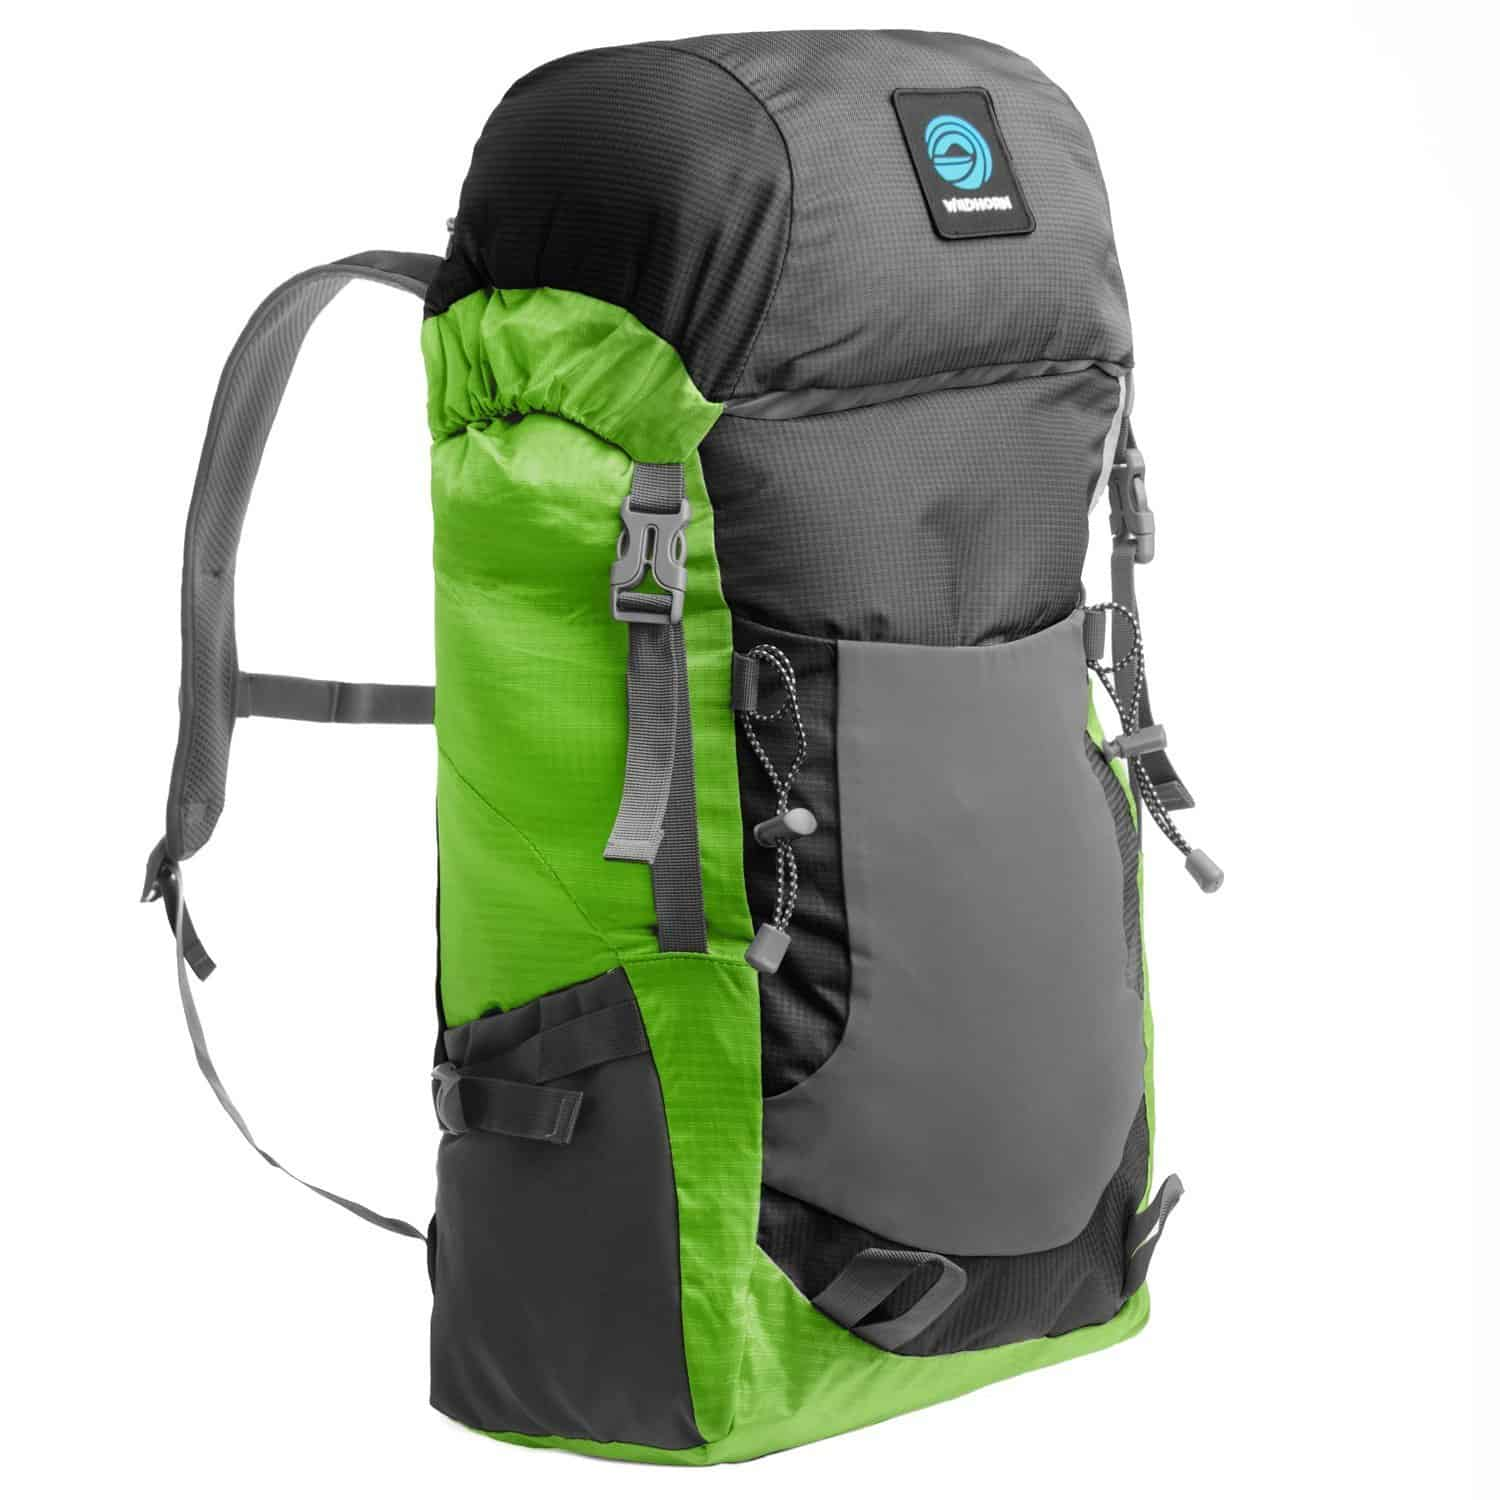 Wildhorn Highpoint 30L Daypack Backpack